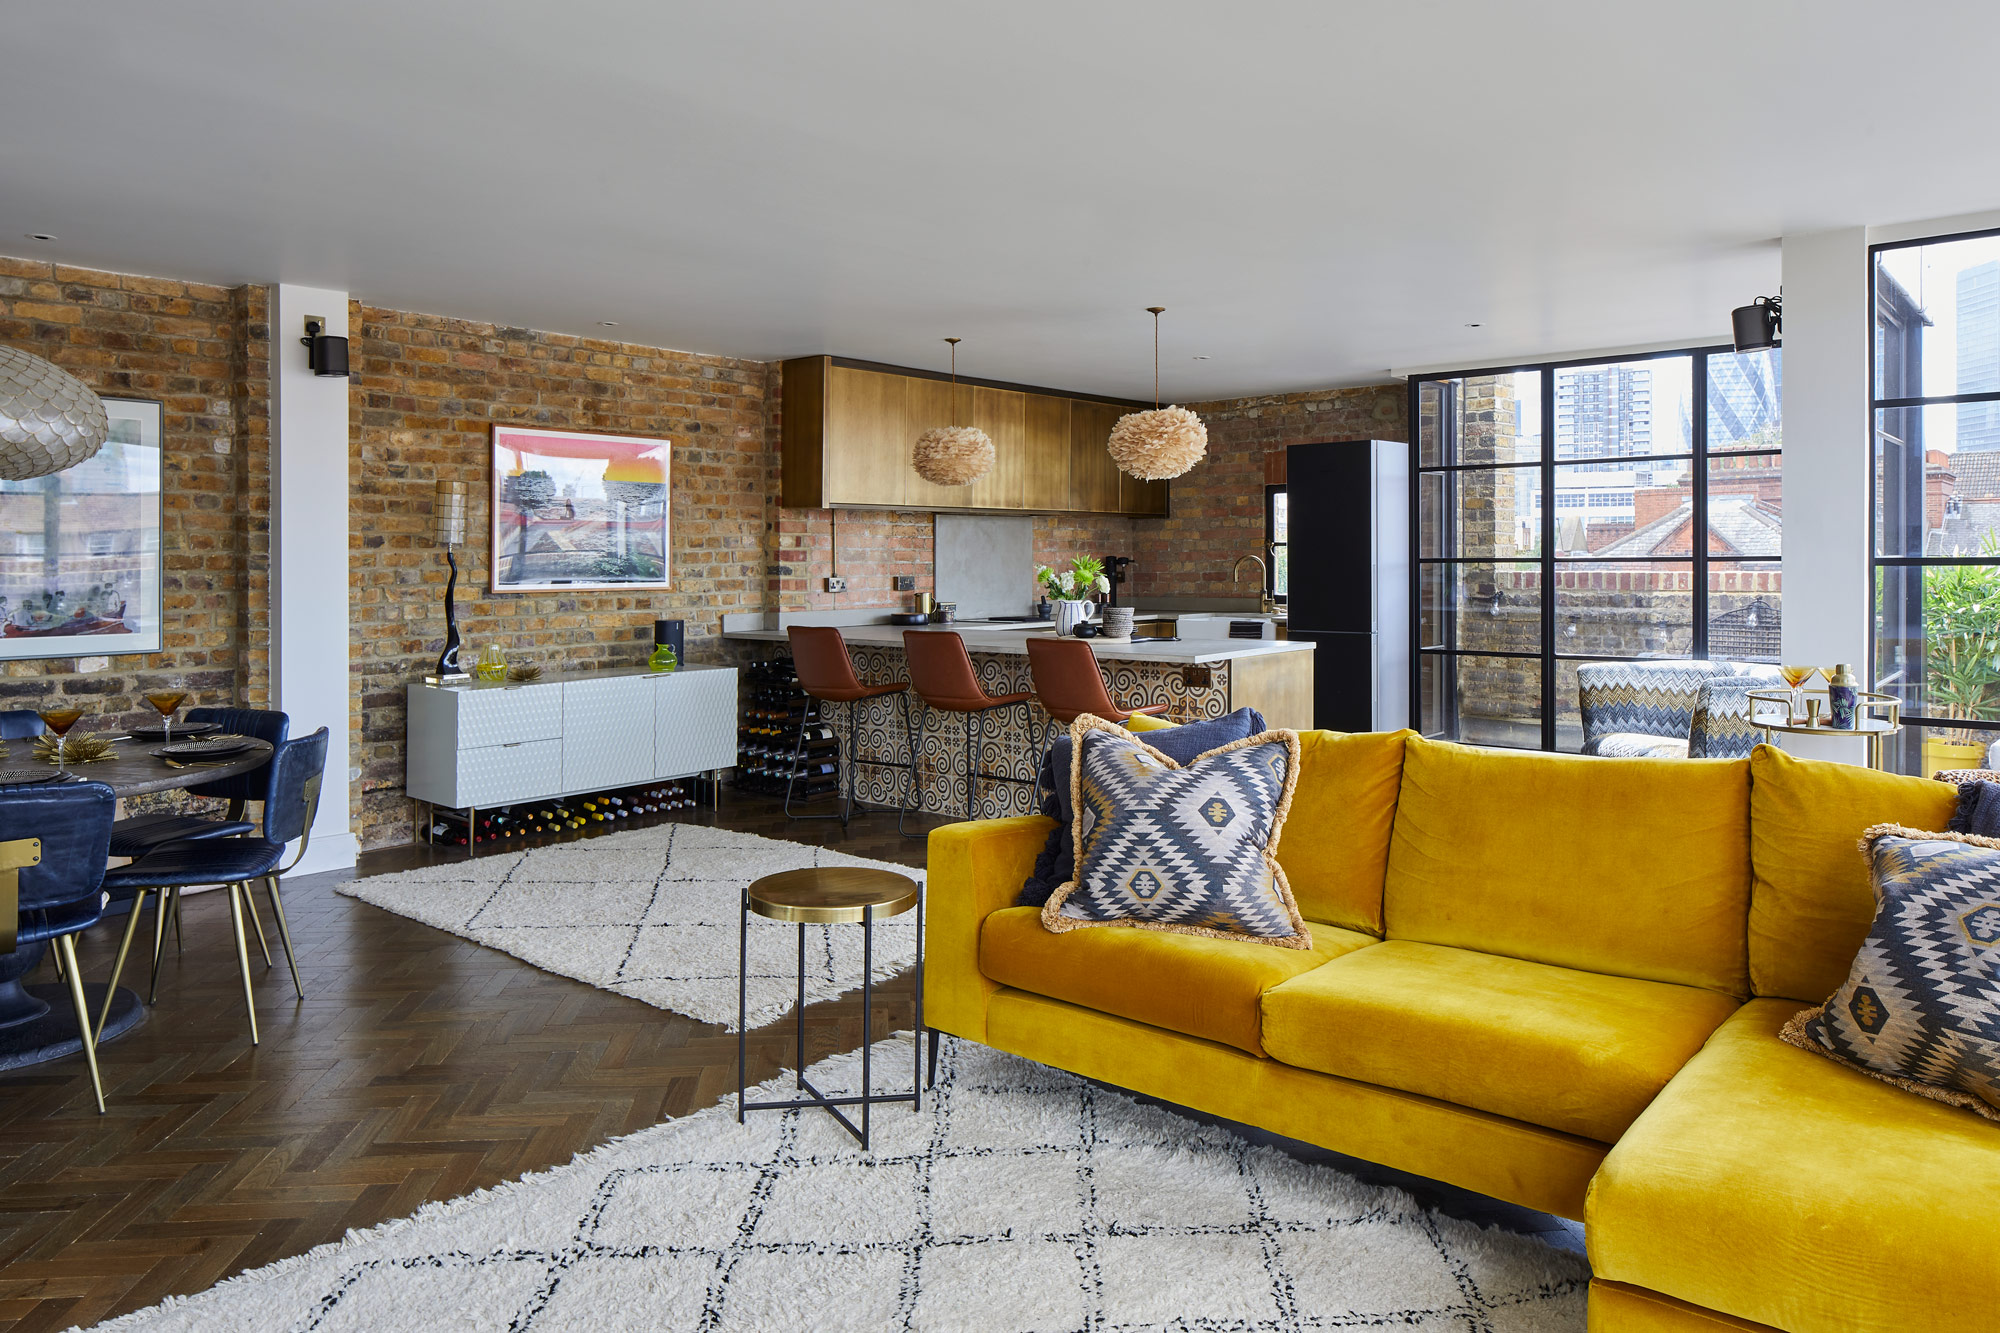 Bright yellow sofa in open plan living space